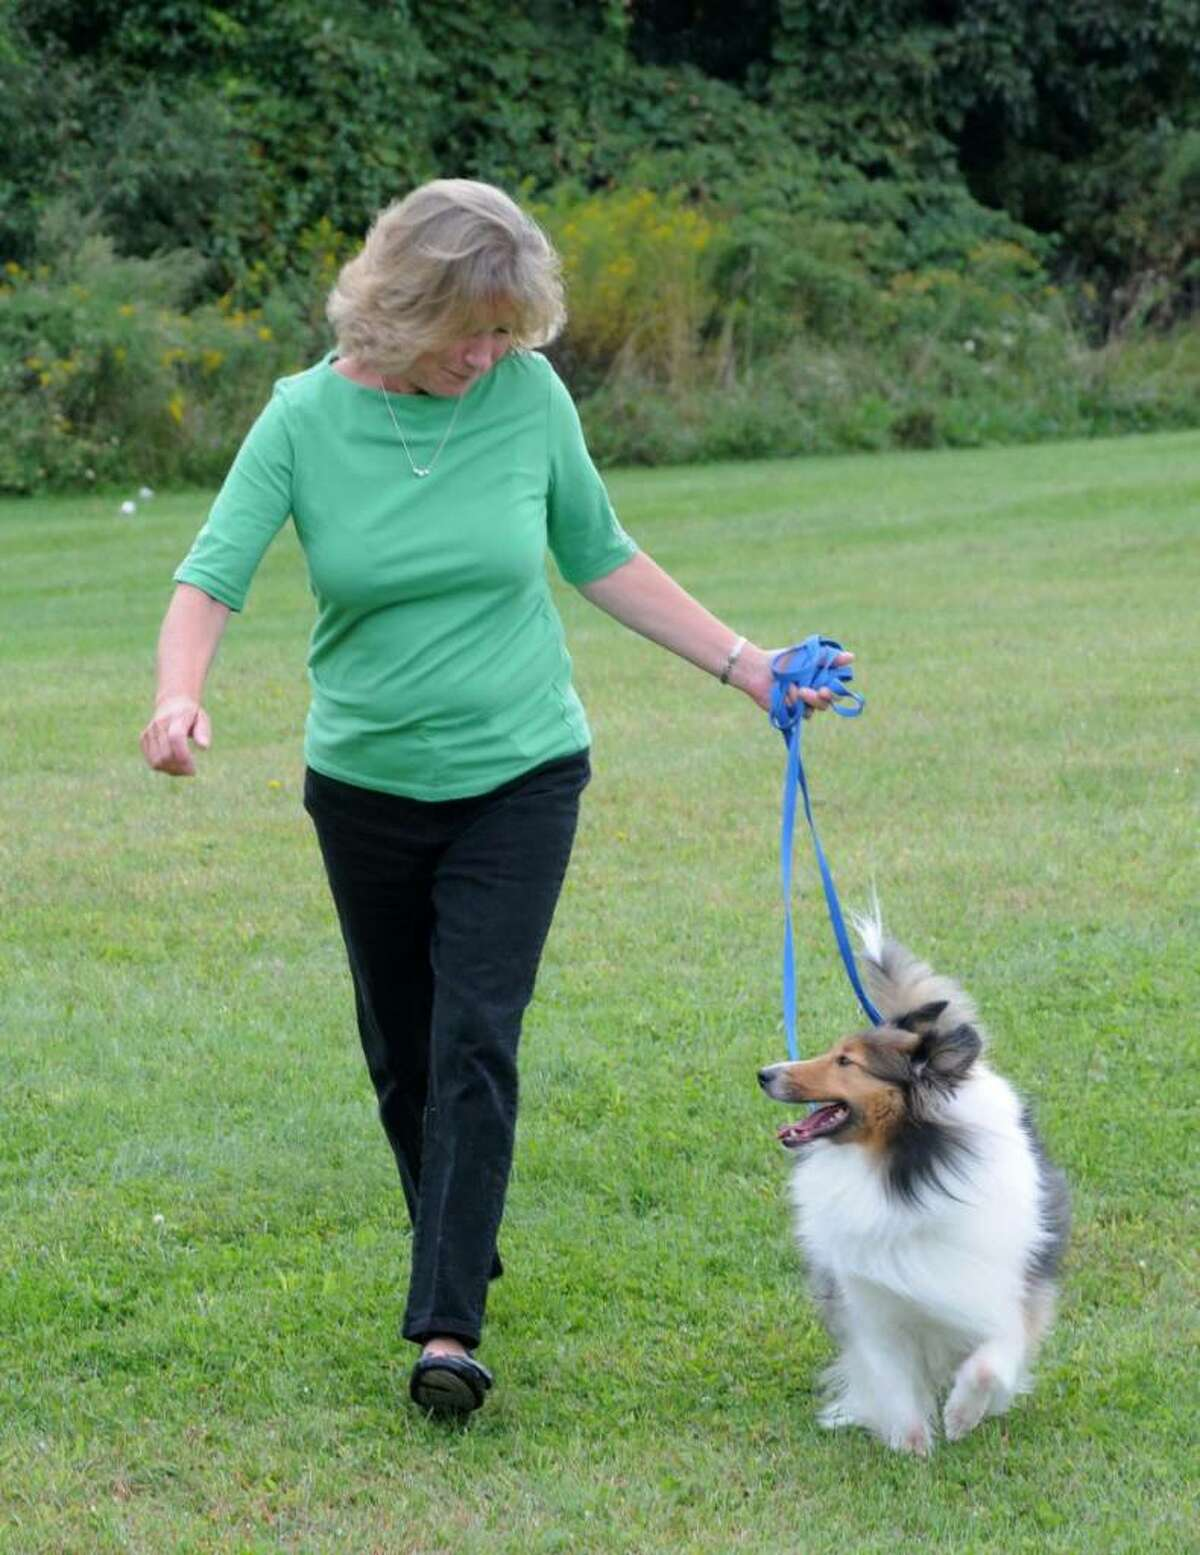 The New Fairfield Dog Owners Group has been working hard for over a year to build a dog park in New Fairfield. The group just received a grant for fences for the park from Petco. Sue Garufi of New fairfield, the founder of the group, walks her dog Harrison on the proposed sight on Thursday Sept. 17, 2009